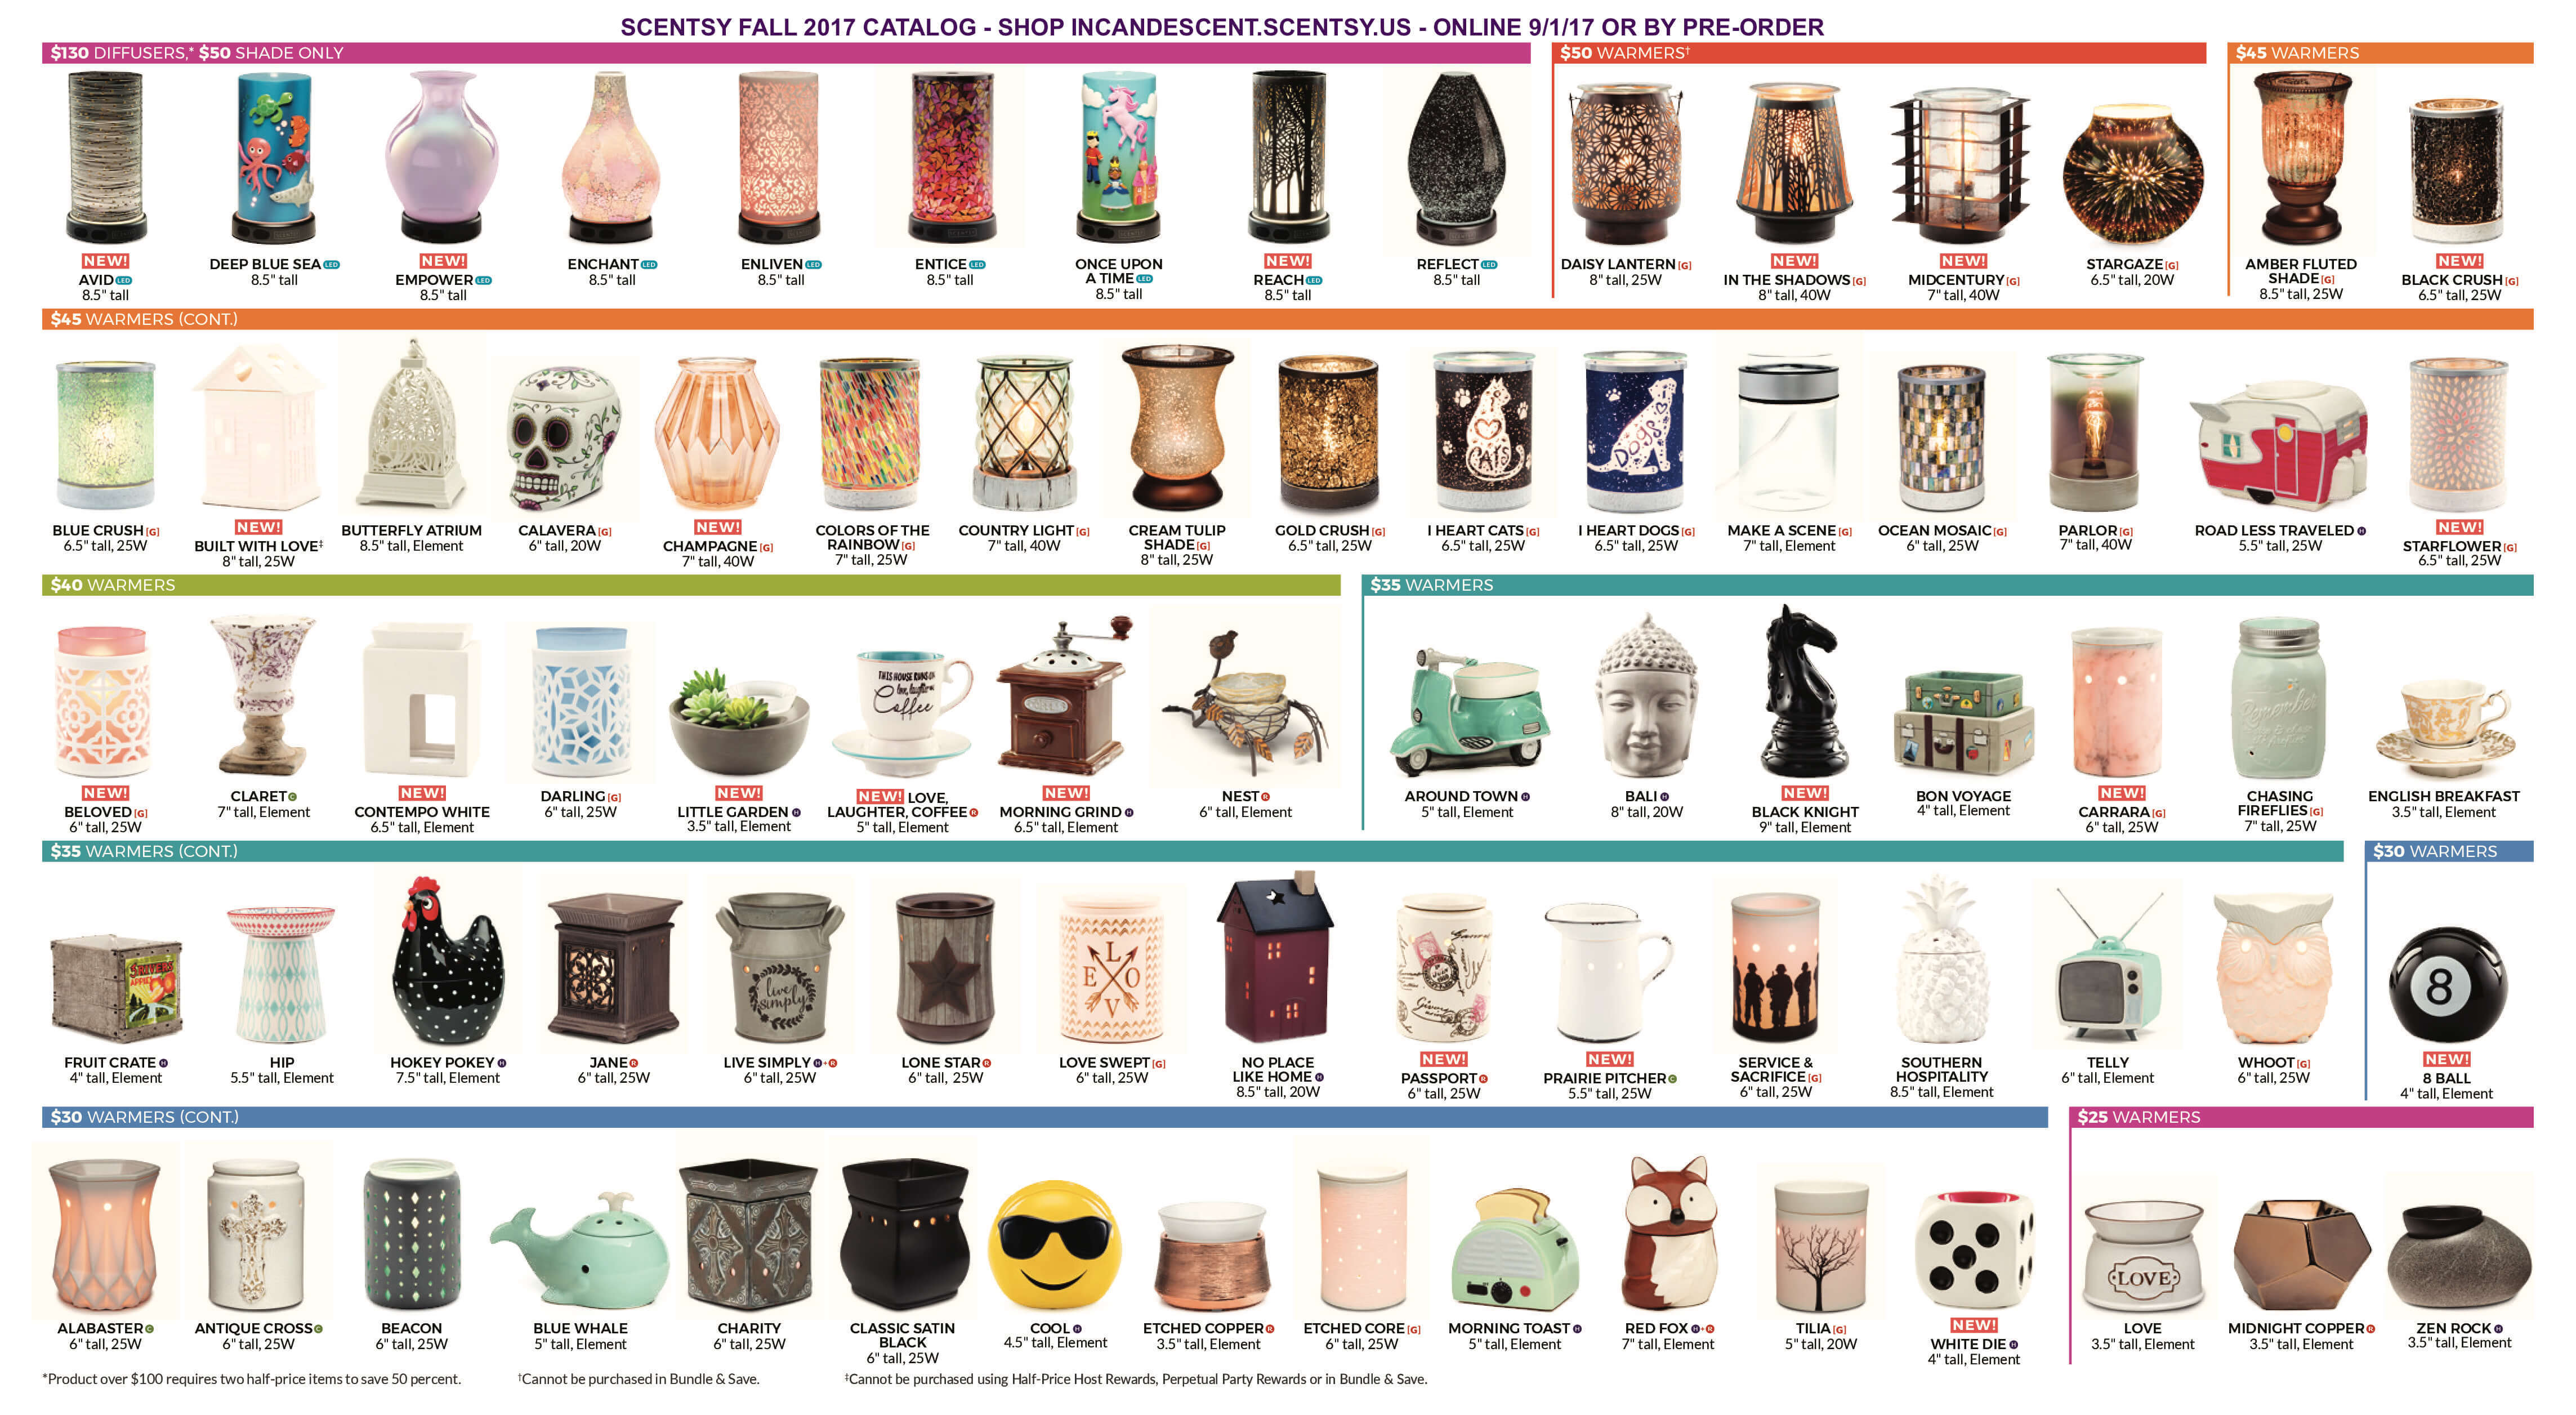 https://www.incandescentwaxmelts.com/wp-content/uploads/2017/07/SCENTSY-CATALOG-ROLL-OUT-PAGE-page-0-1.jpg